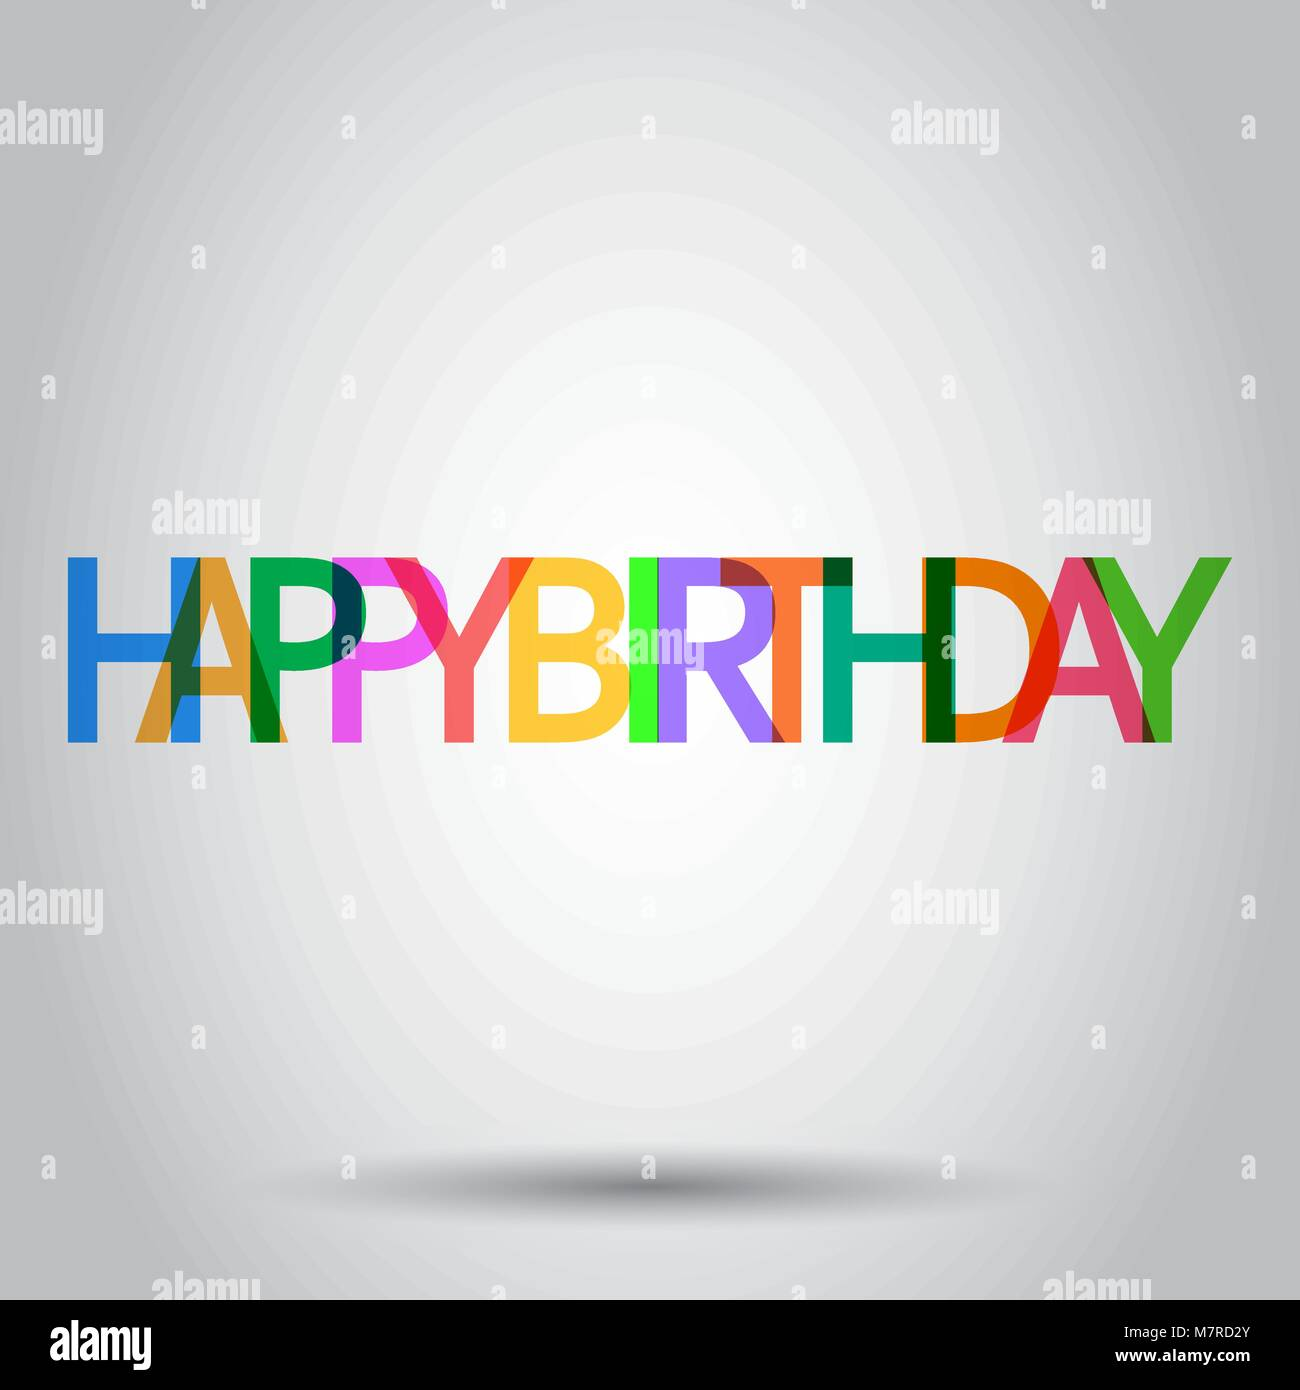 Happy birthday vector icon. Celebration card with text flat vector illustration. Birthday business concept pictogram - Stock Image